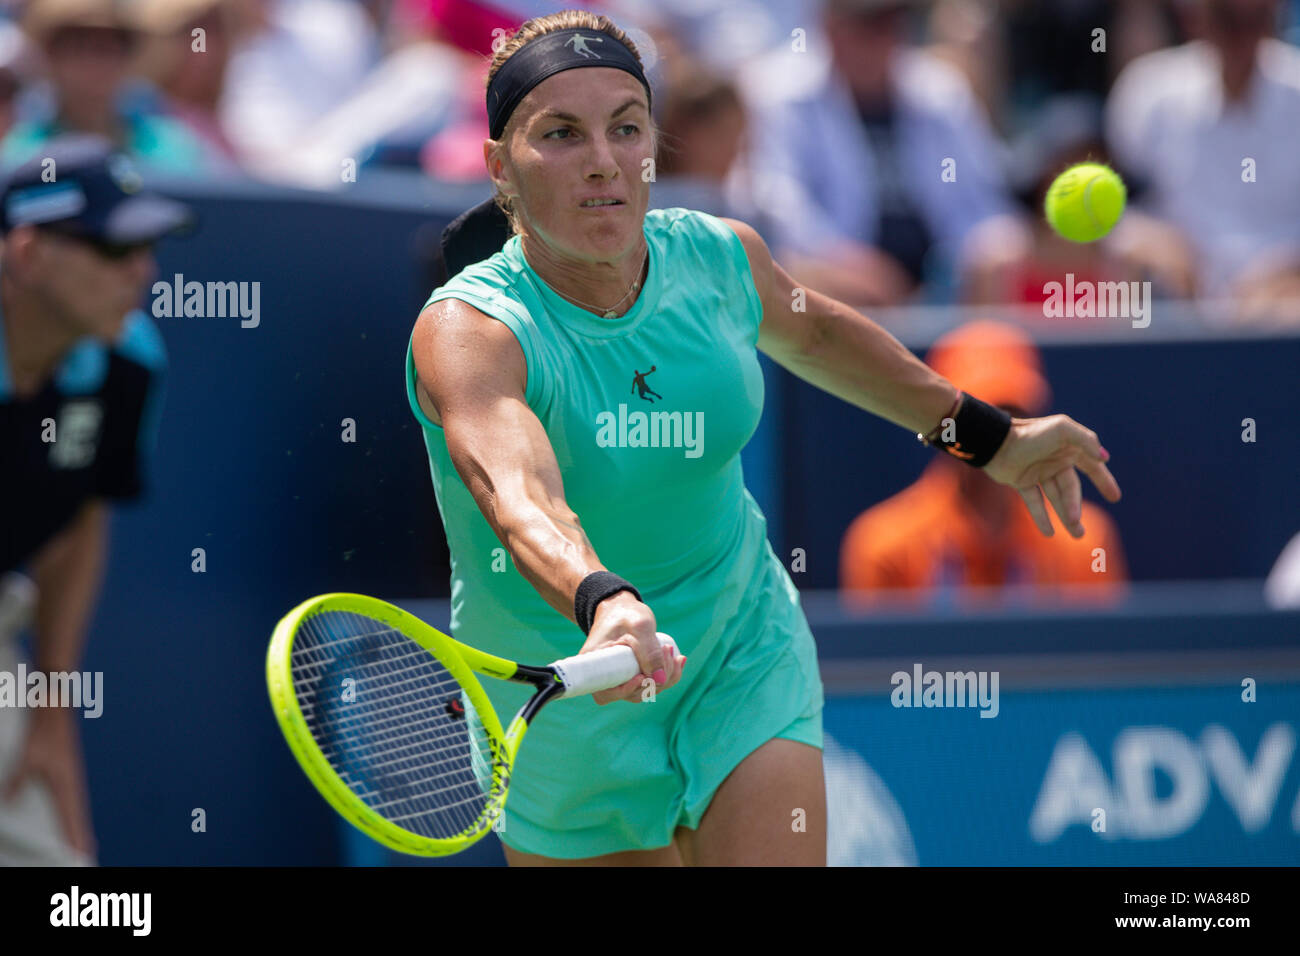 August 18, 2019, Mason, Ohio, USA: Madison Keys (USA) in action during the Women's Final of the Western and Southern Open at the Lindner Family Tennis Center, Mason, Oh. (Credit Image: © Scott Stuart/ZUMA Wire) Stock Photo